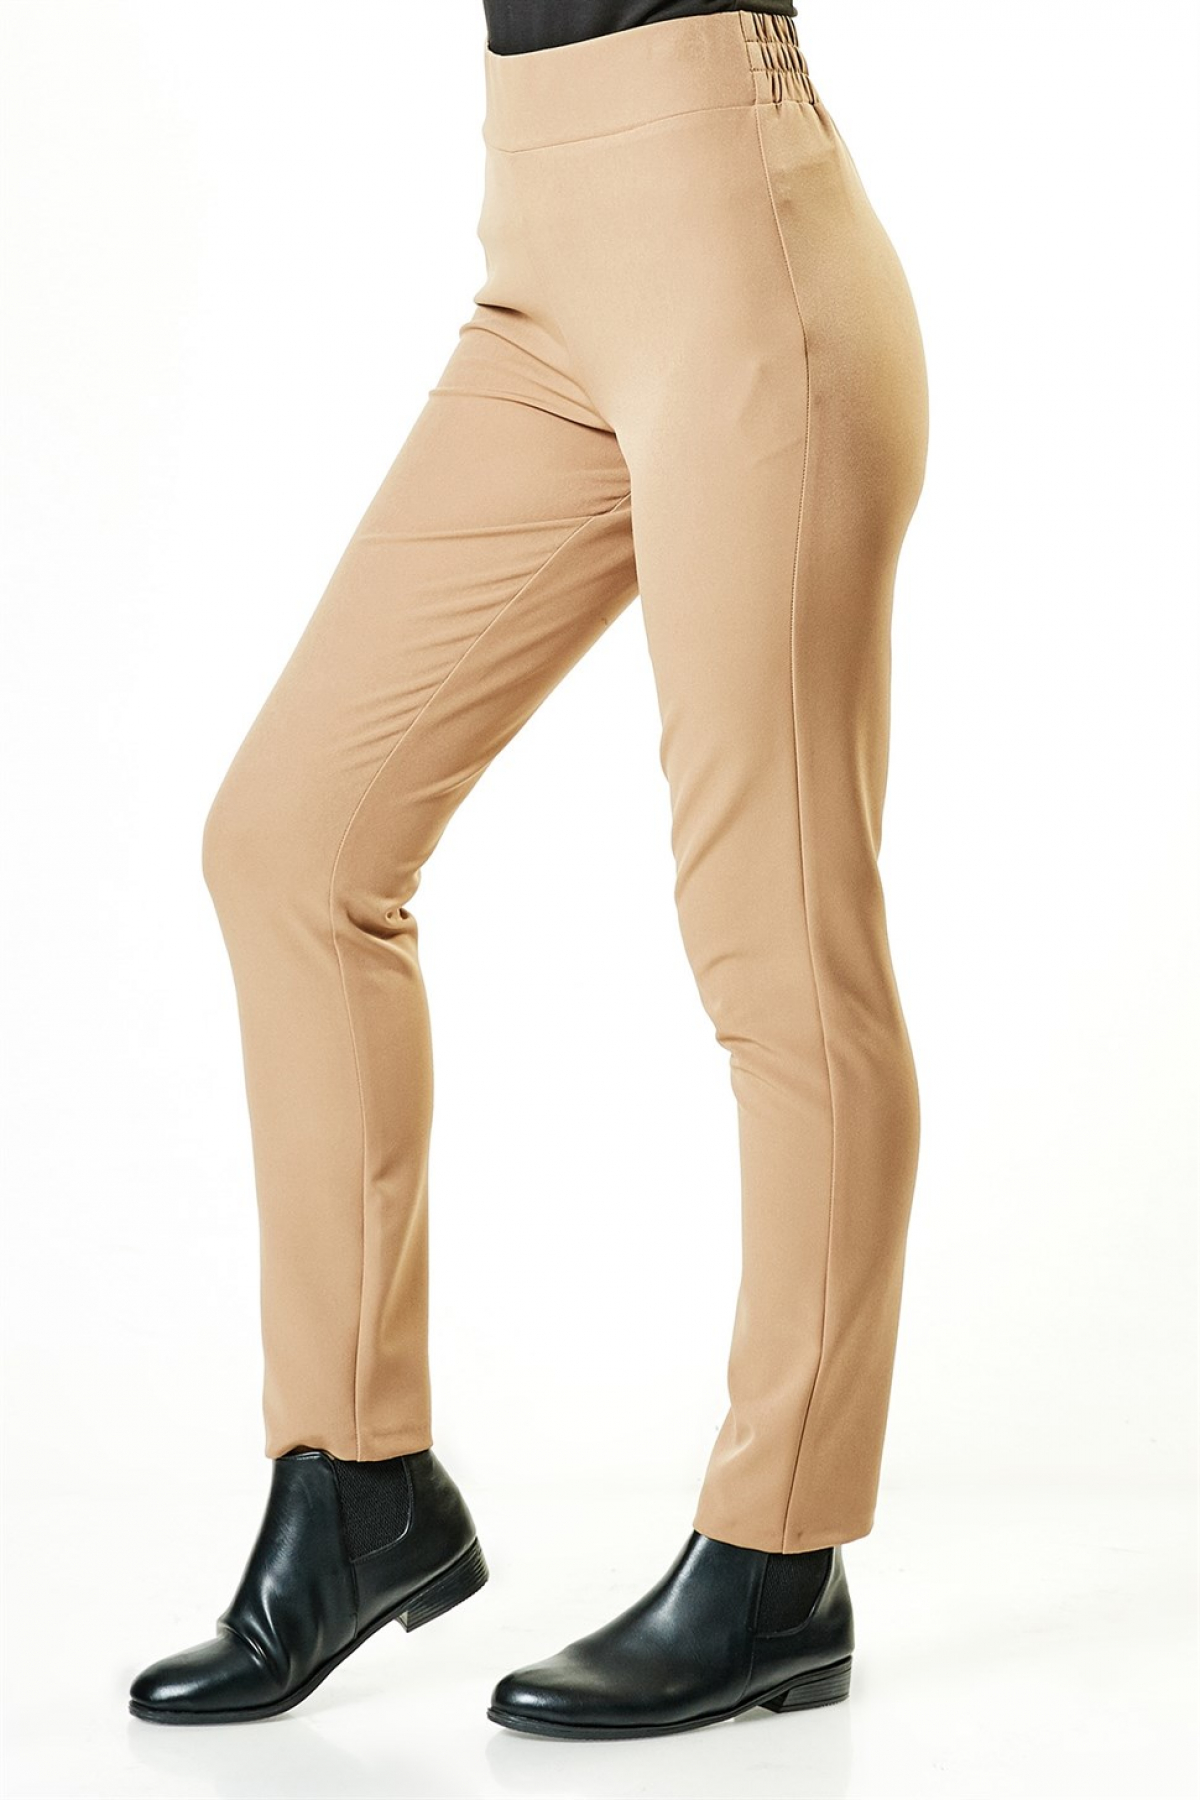 Armine Women Pants - 8k2639  Brown